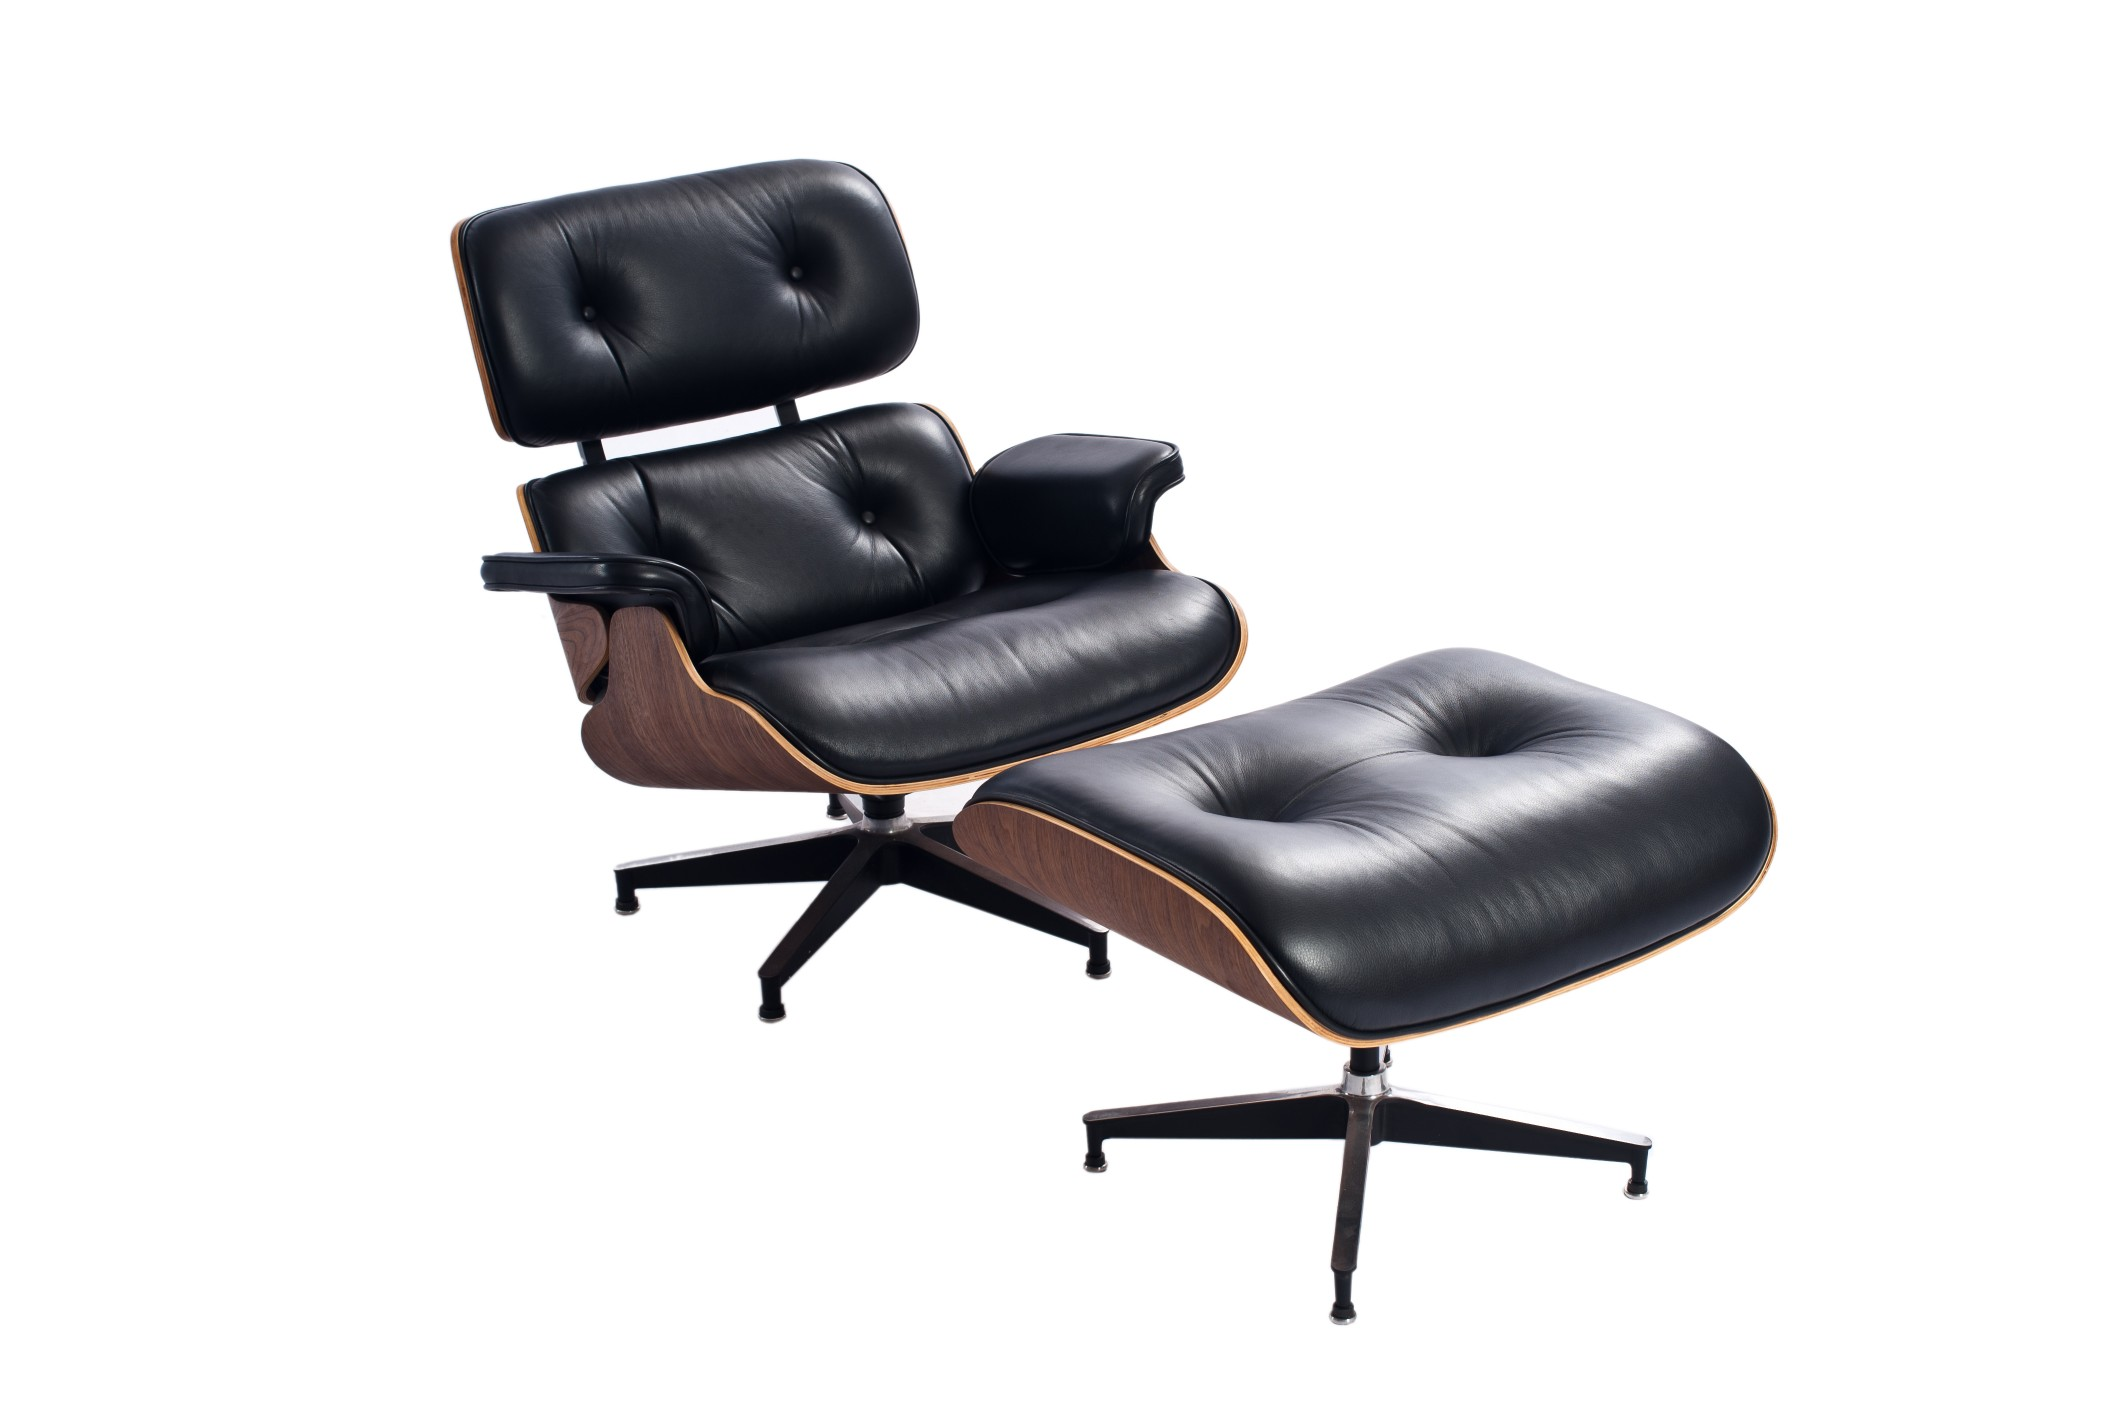 Eames Lounge Sessel Eames Lounge Chair Absolute Brilliance